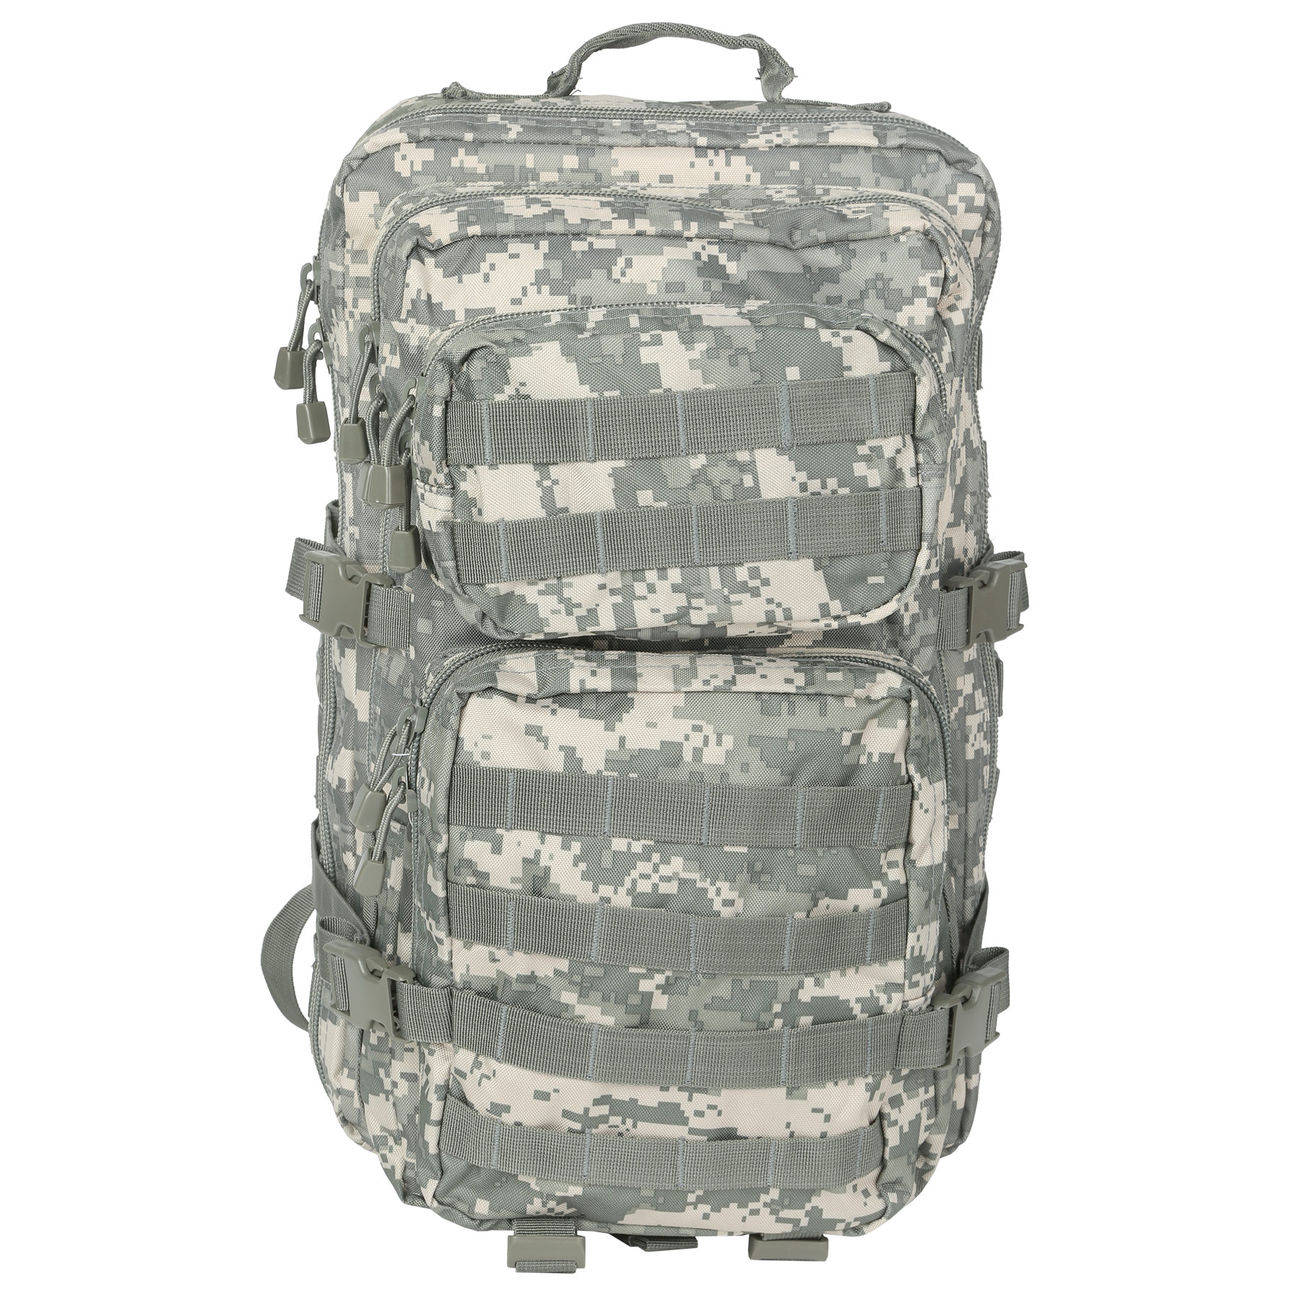 Mil-Tec Rucksack US Assault Pack II 40 Liter at-digital 6